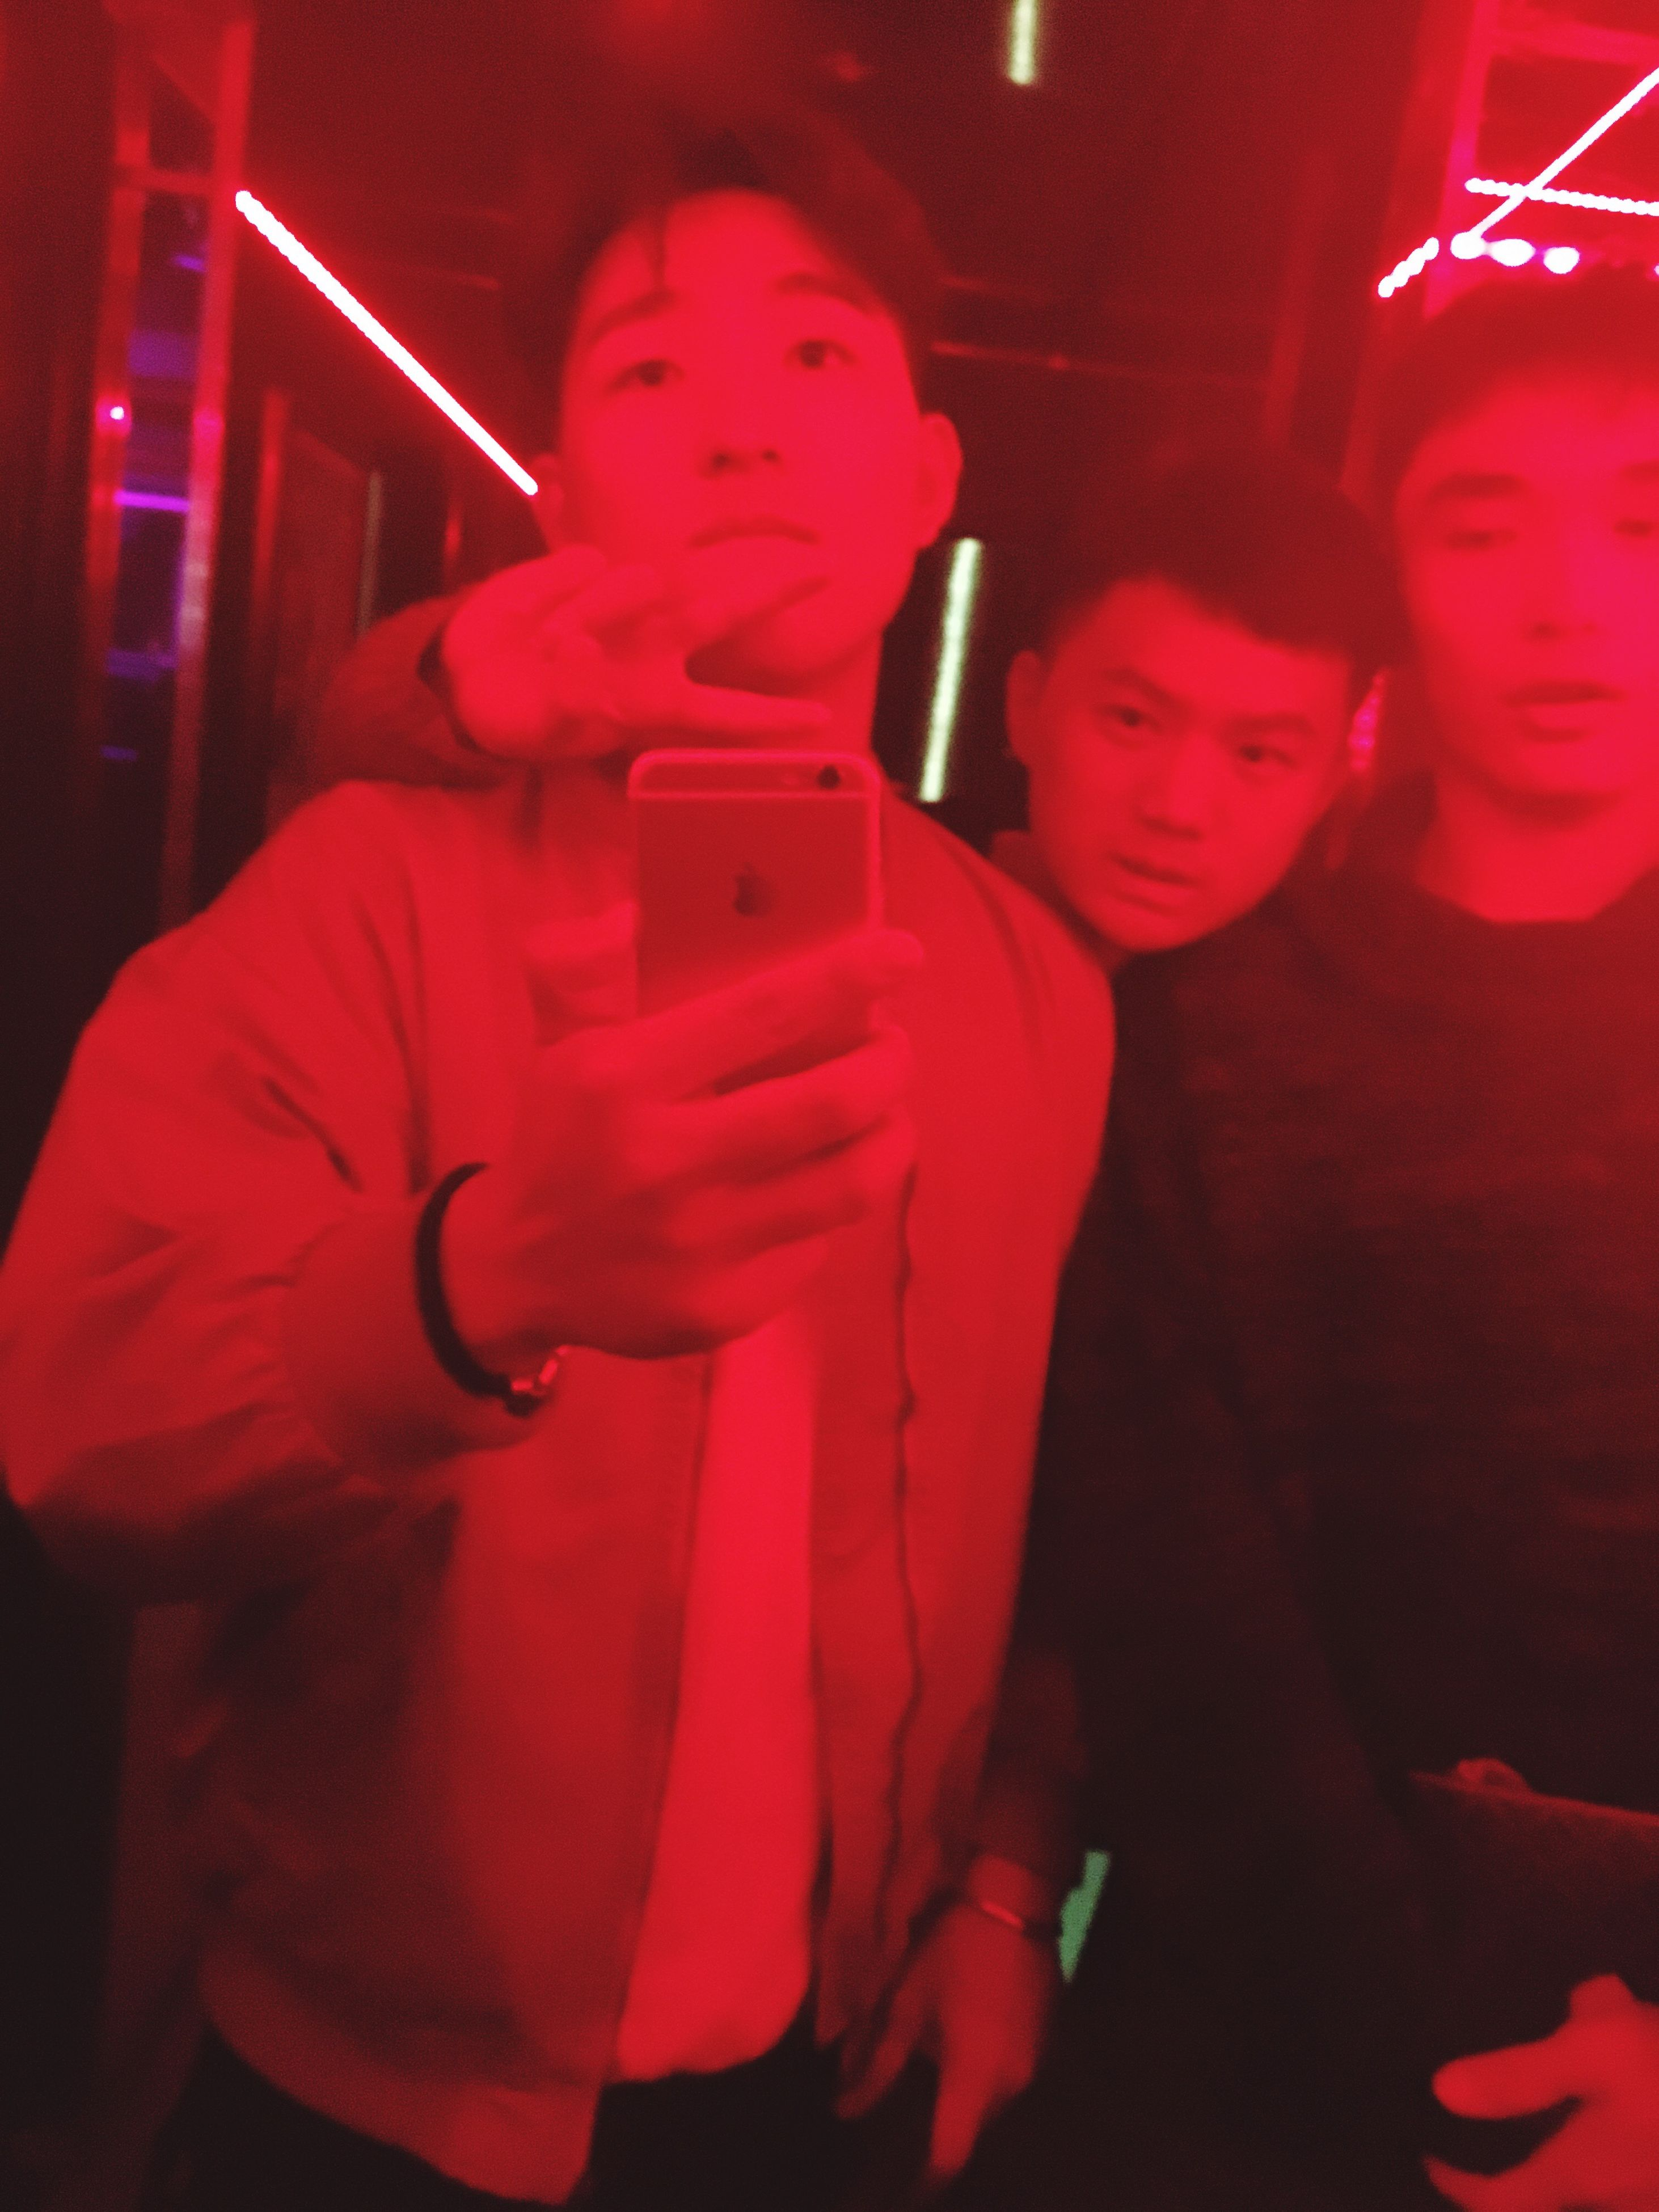 waist up, illuminated, night, red, casual clothing, enjoyment, nightclub, young adult, vibrant color, nightlife